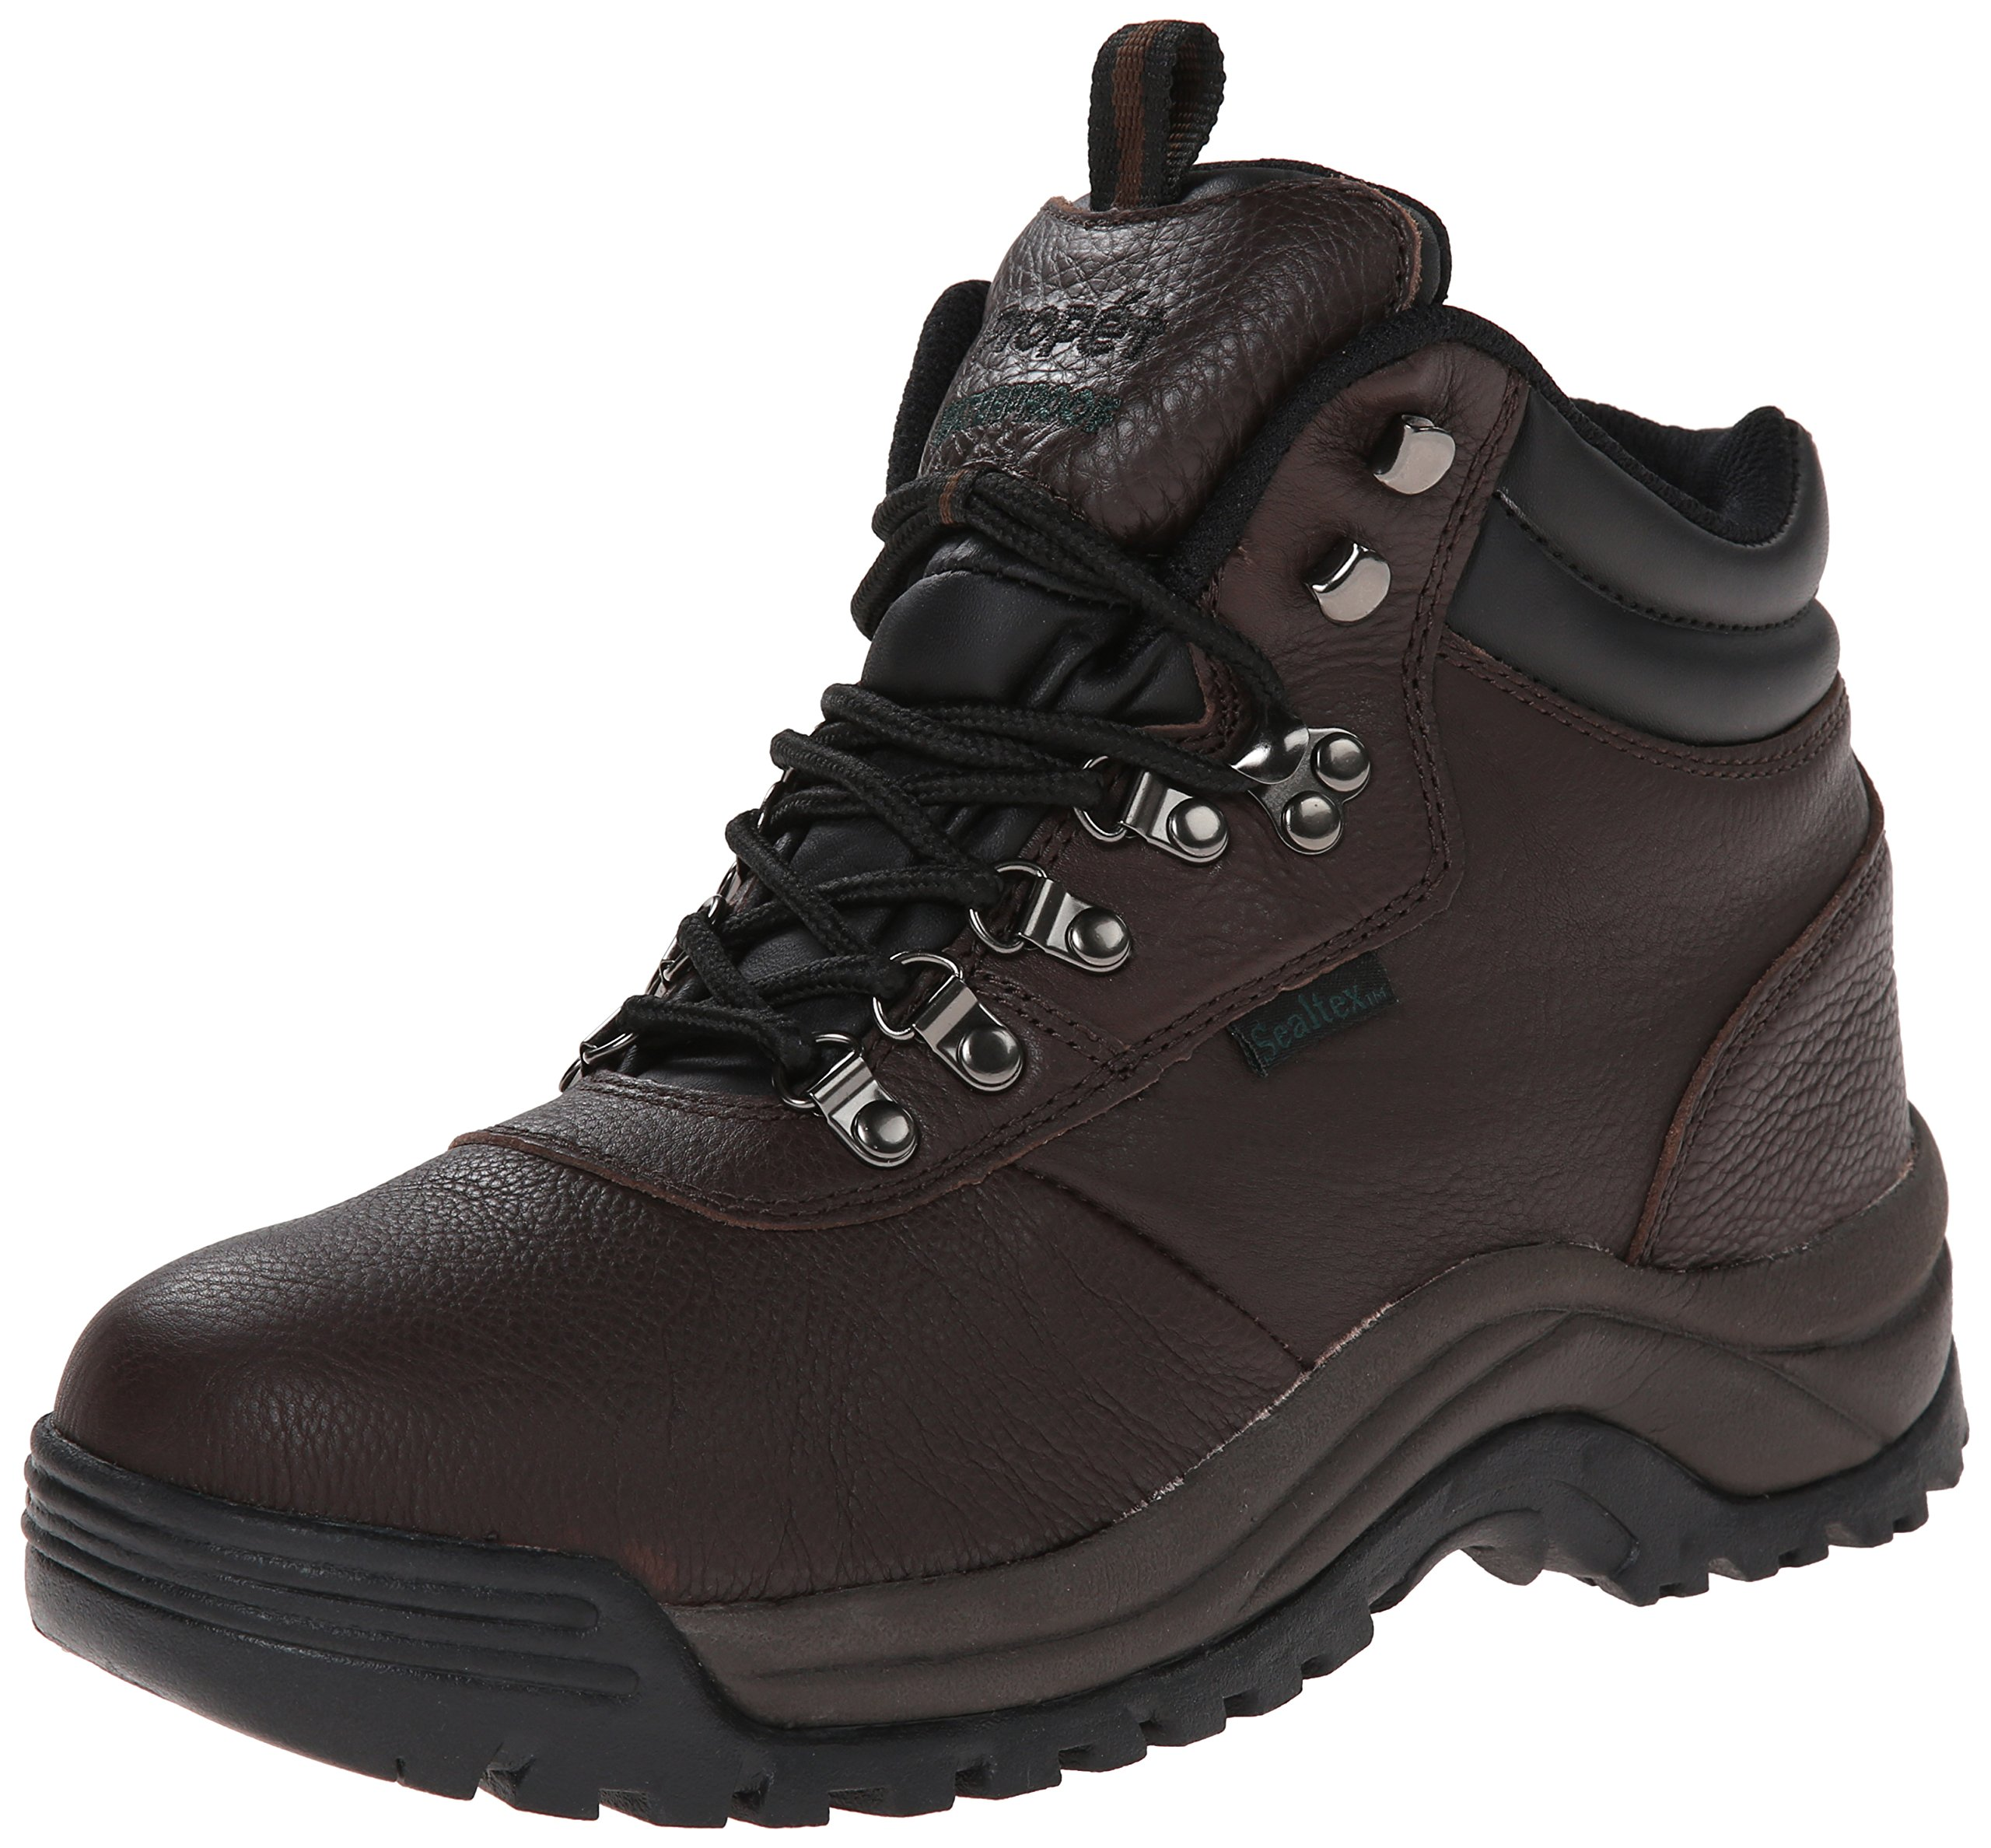 Propet Men's Cliff Walker Boot,Bronco Brown,7 M US by Propét